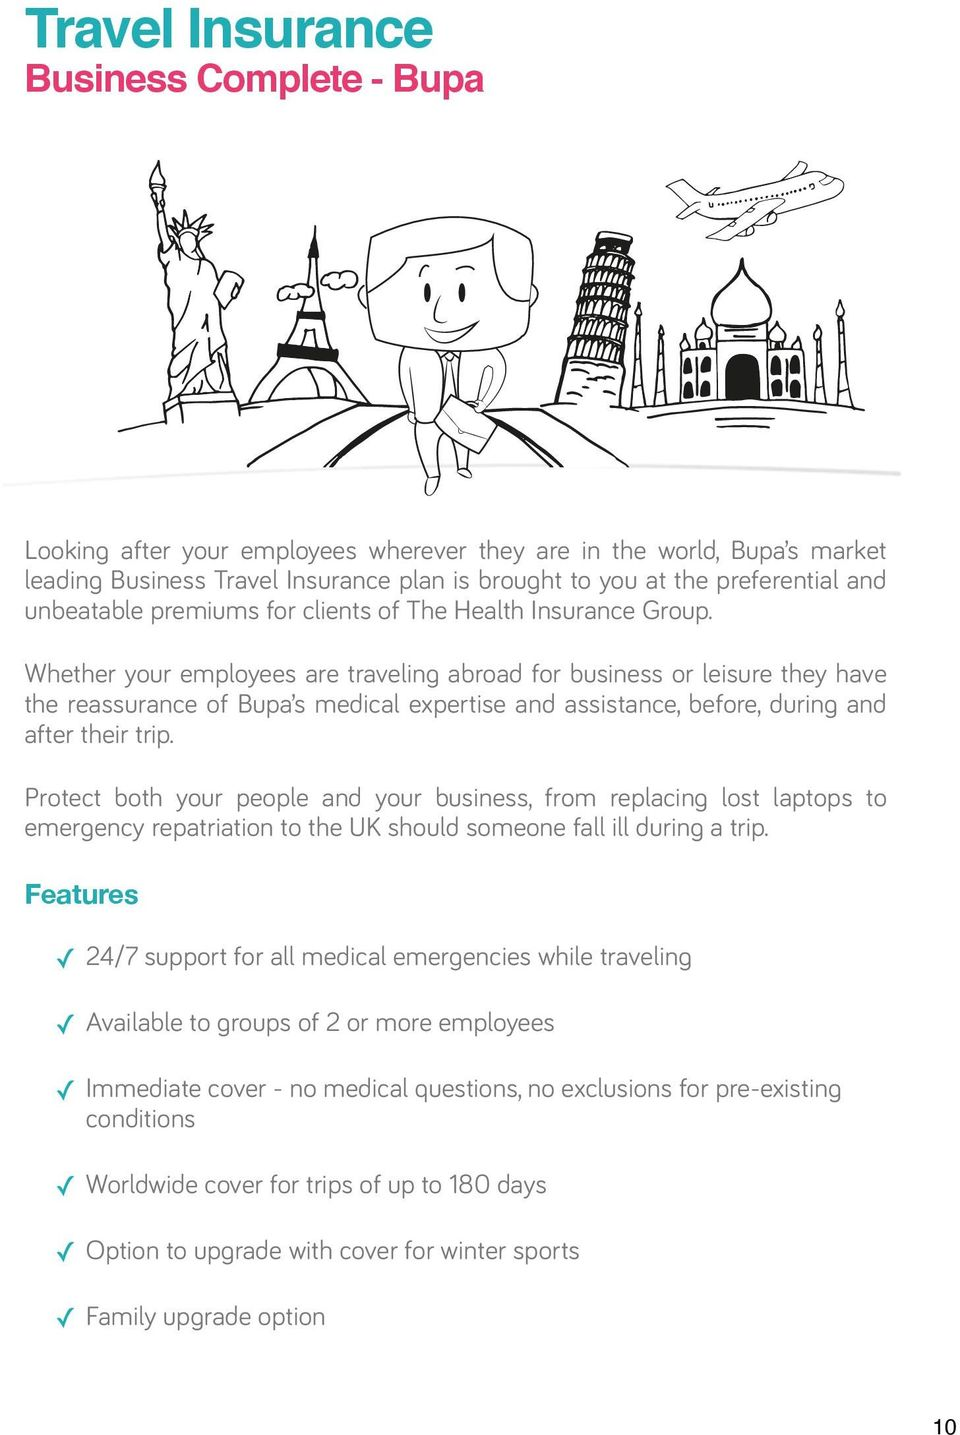 Whether your employees are traveling abroad for business or leisure they have the reassurance of Bupa s medical expertise and assistance, before, during and after their trip.